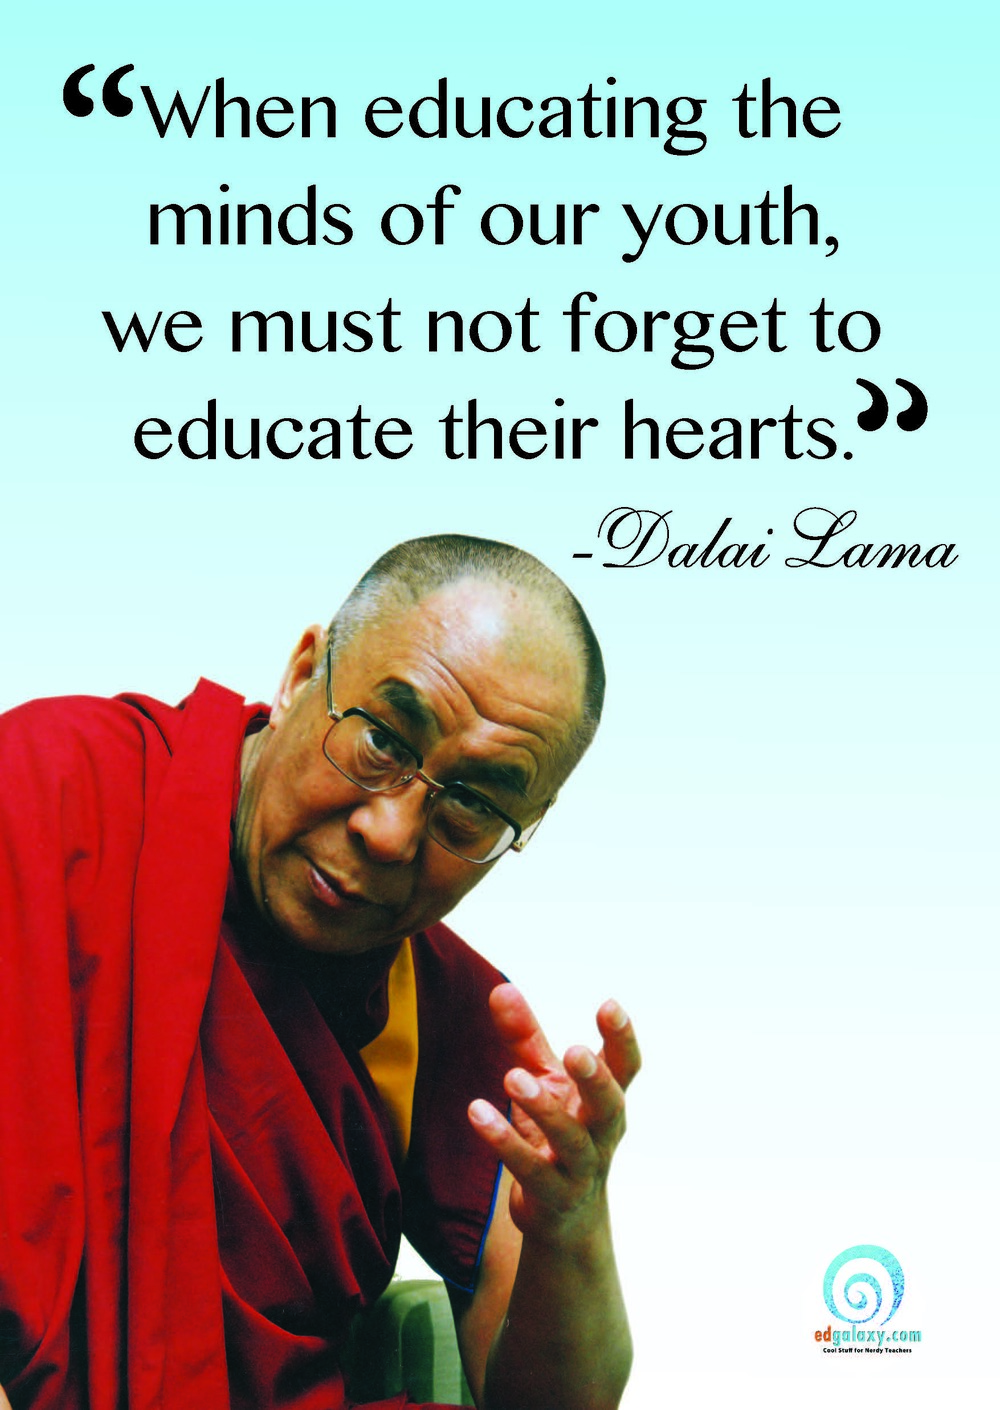 Inspirational Education Quotes Education Quotes   Famous Quotes for teachers and Students  Inspirational Education Quotes